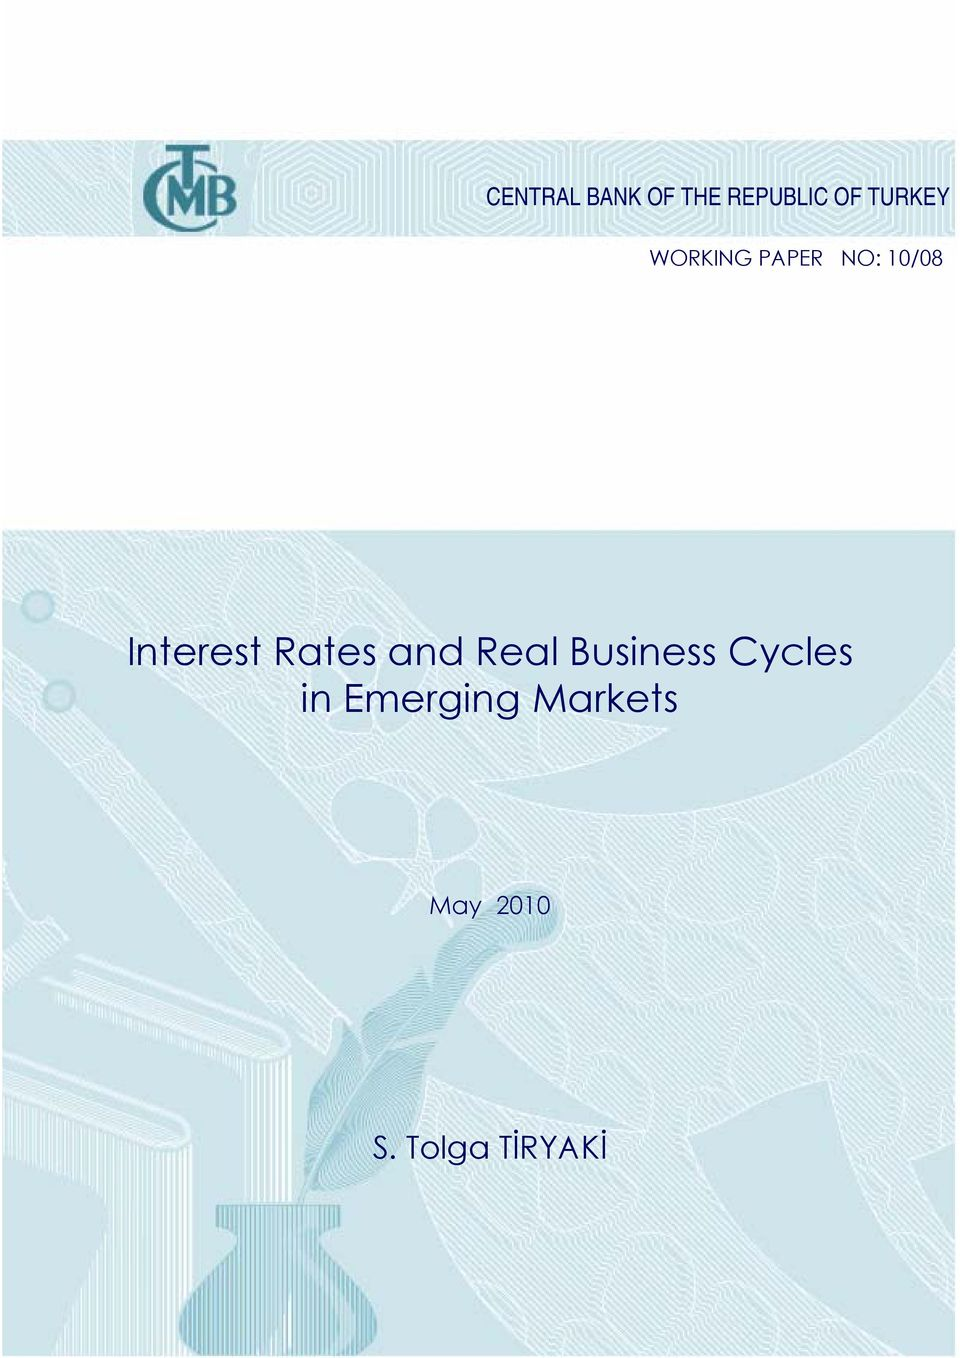 Interest Rates and Real Business